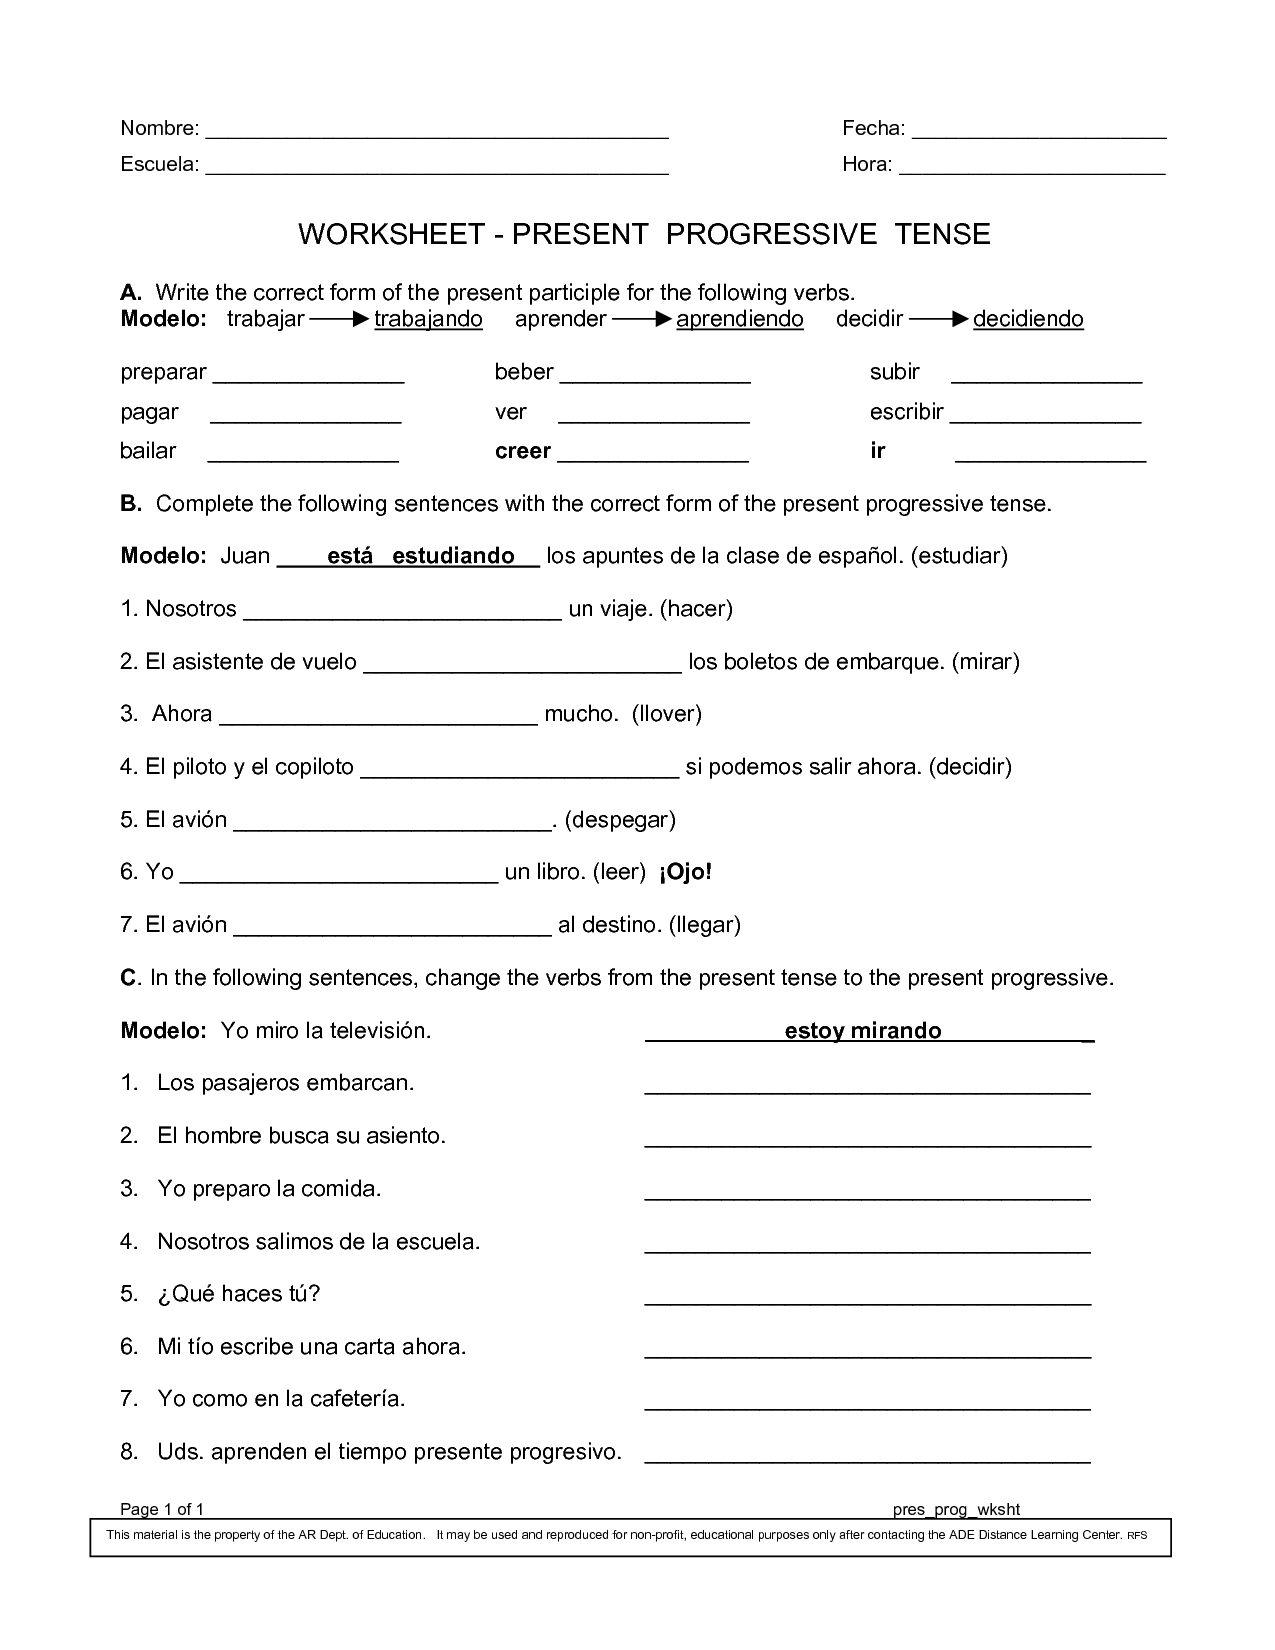 spanish worksheets printables present progressive worksheet verbs spanish worksheets. Black Bedroom Furniture Sets. Home Design Ideas